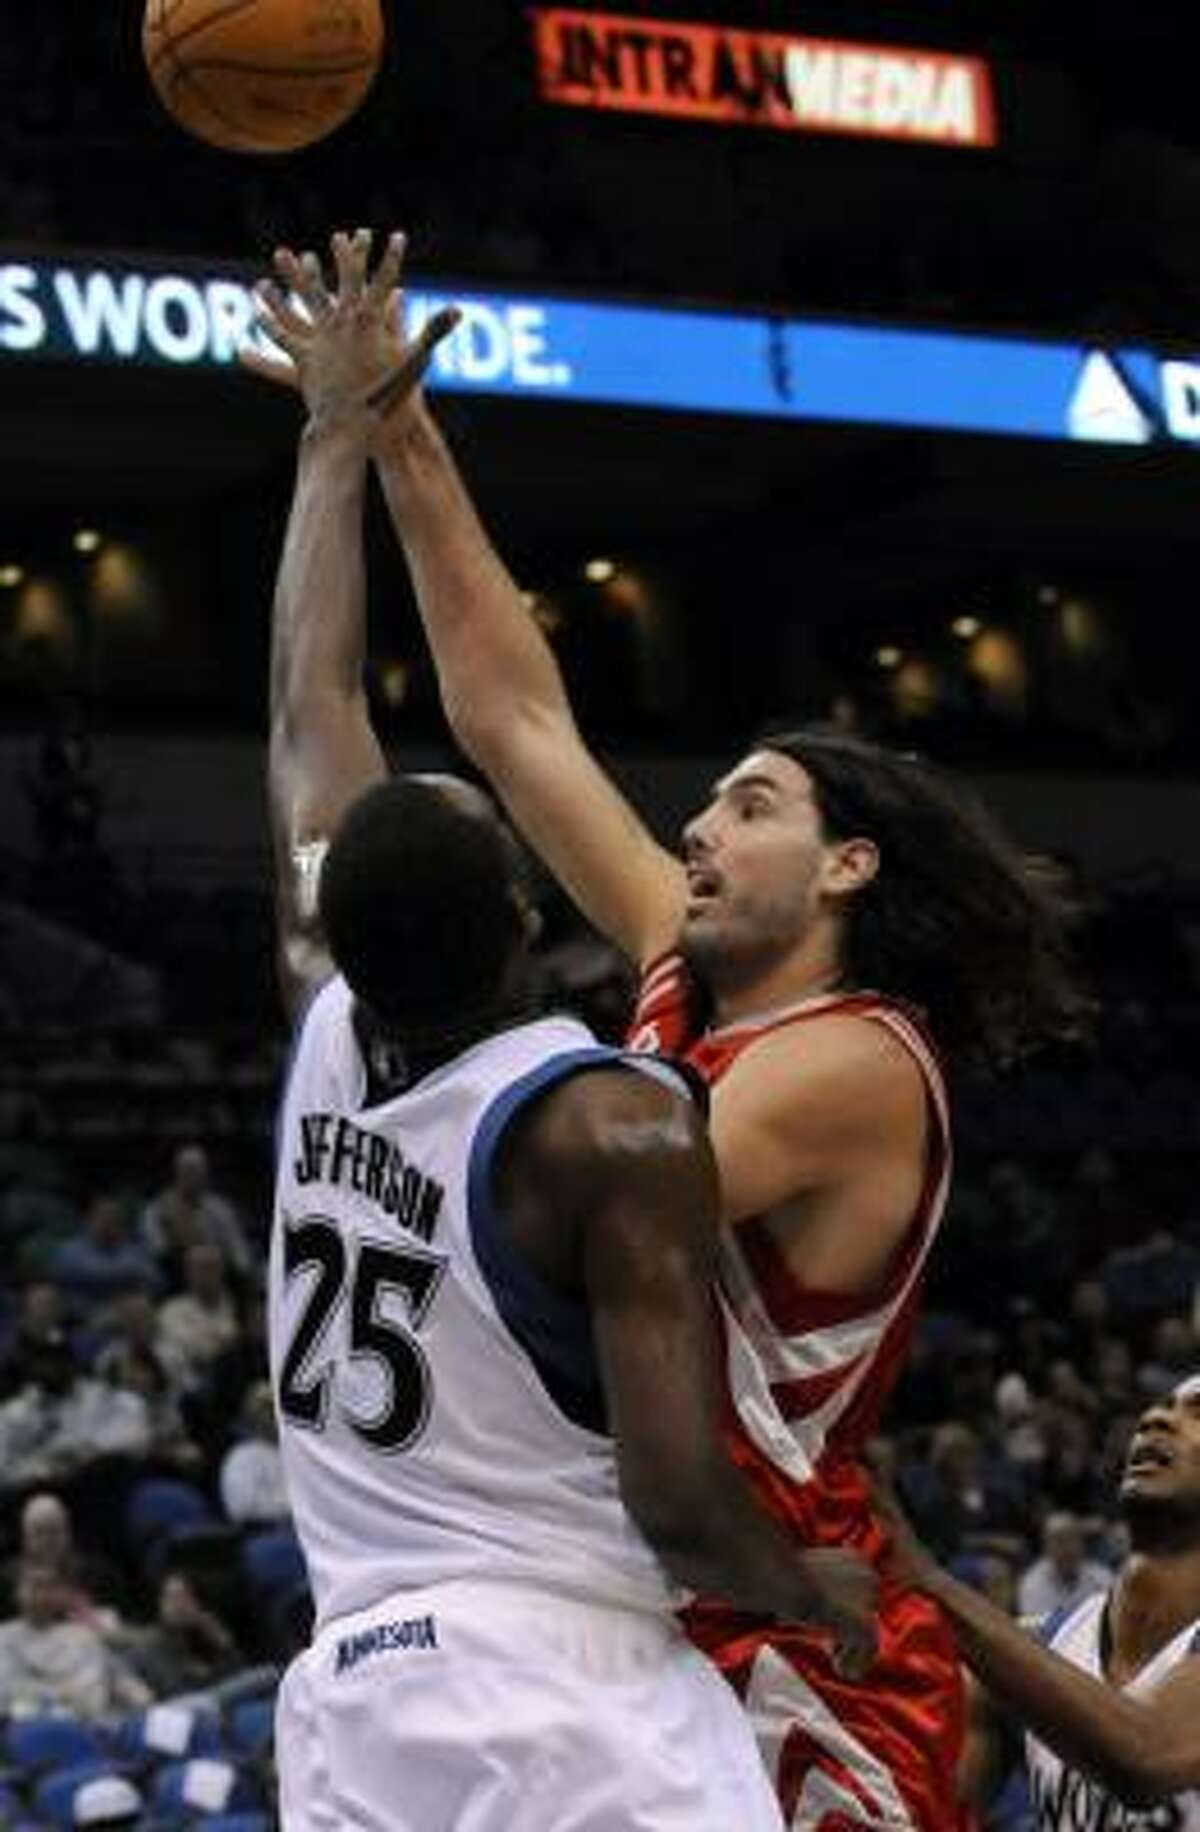 Rockets forward Luis Scola shoots over the Timberwolves' Al Jefferson in the first quarter.